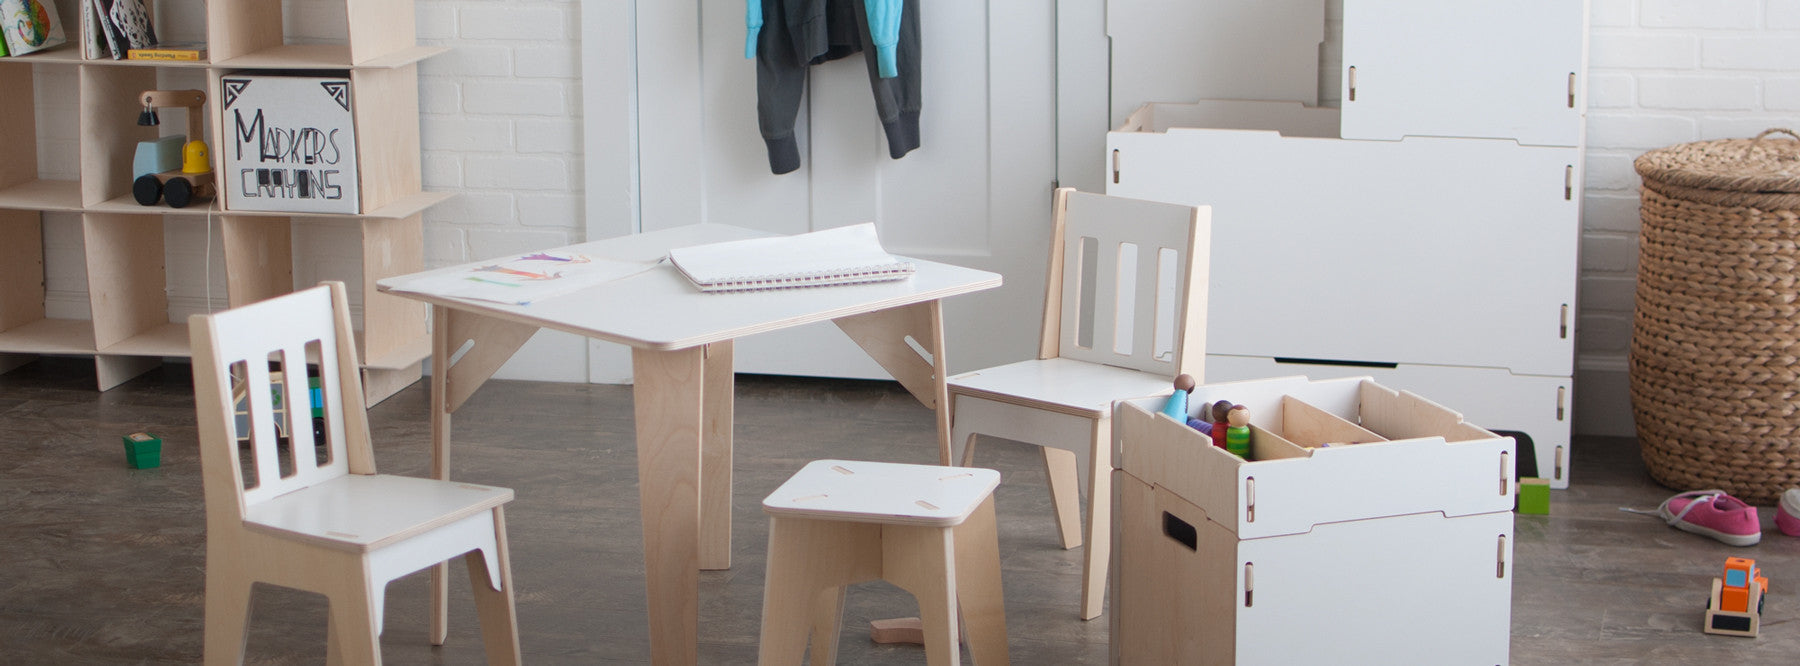 Modern Wooden Kids Table and Chairs